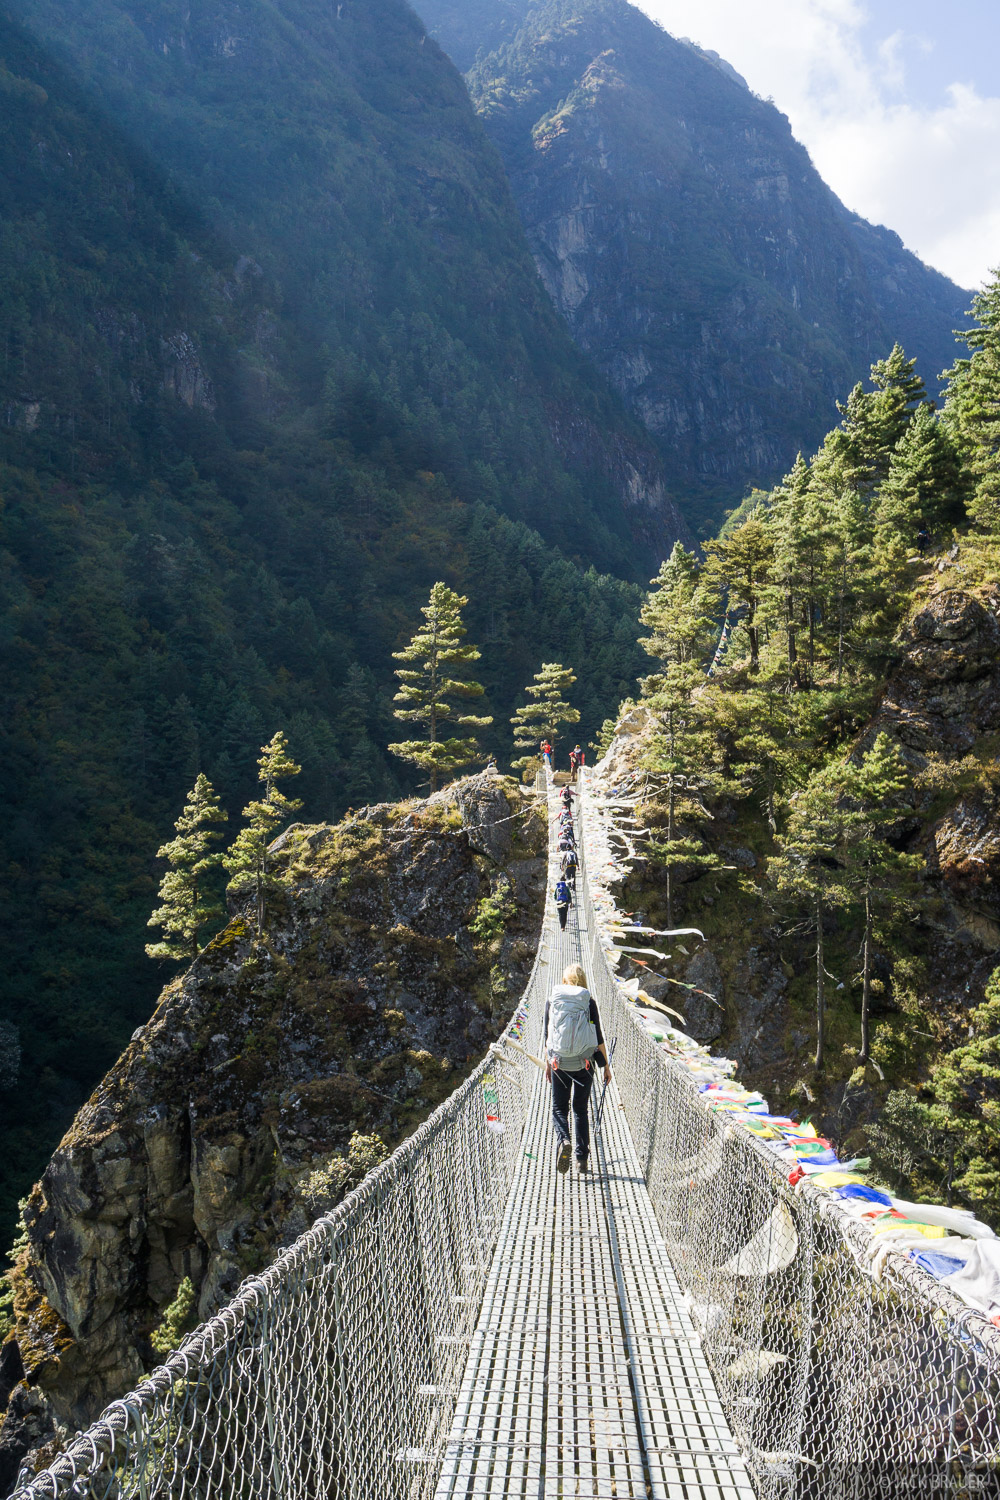 Himalaya,Khumbu,Nepal, Dudh Koshi, bridge, hiking, photo